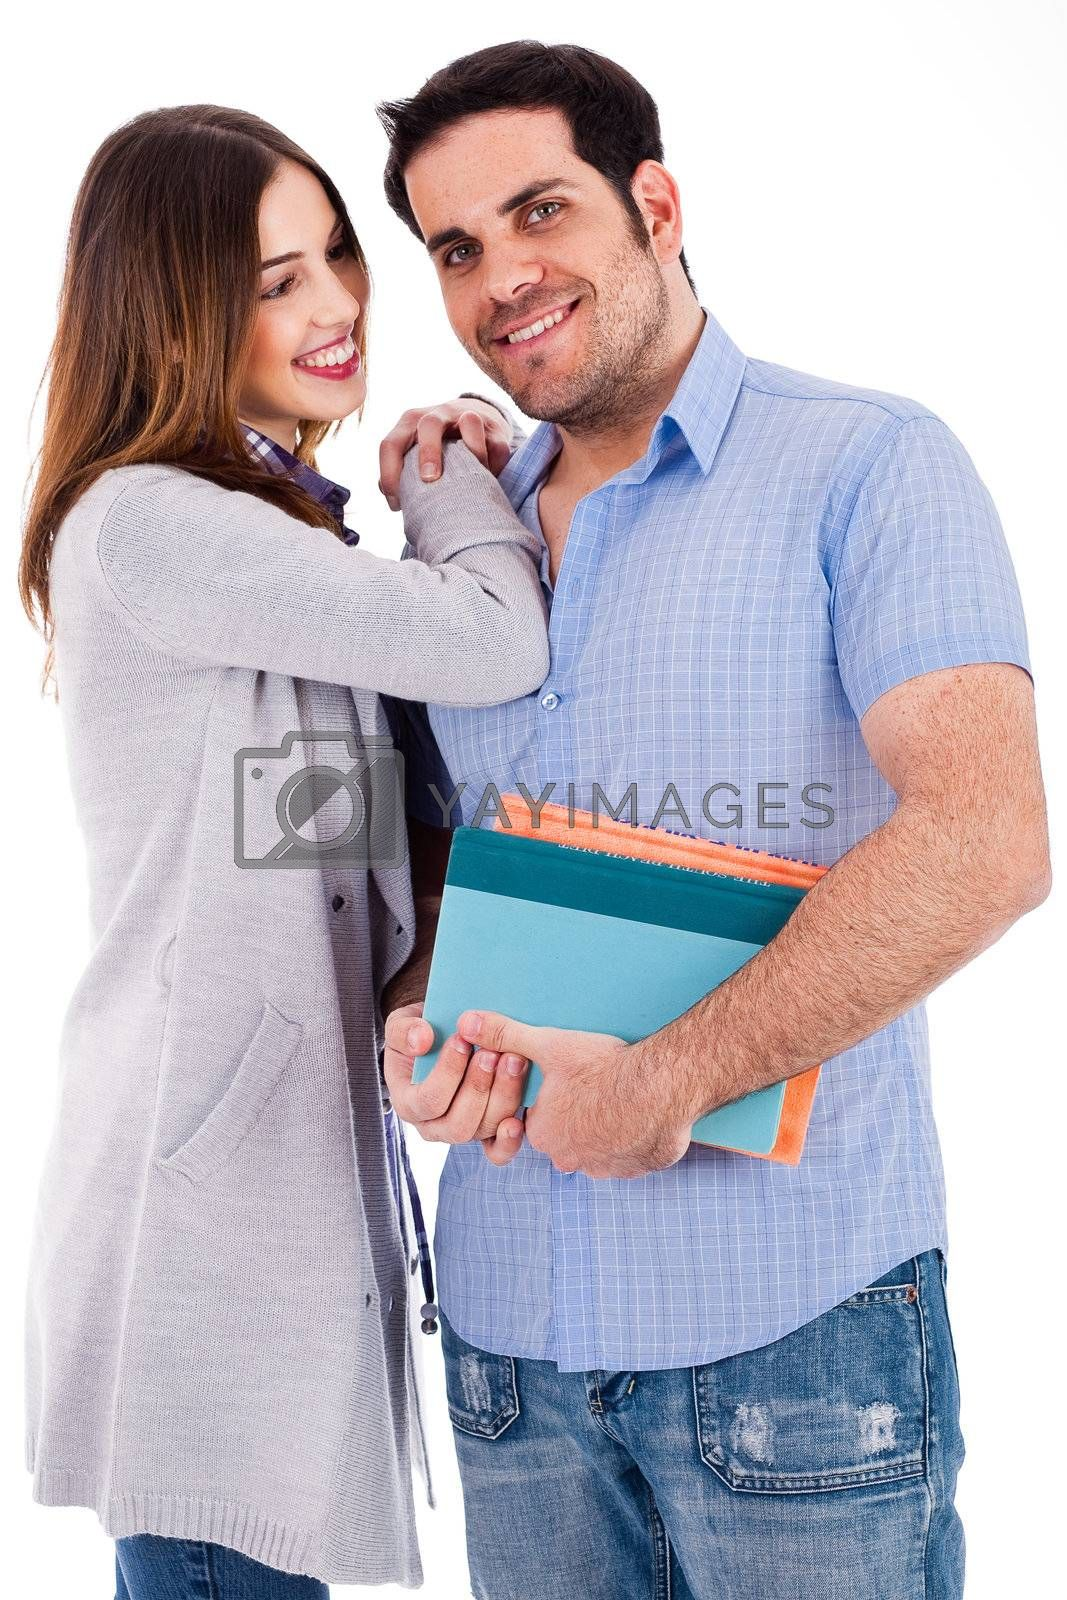 Girl looking at her boyfriend by her hands on his shoulders on a white background